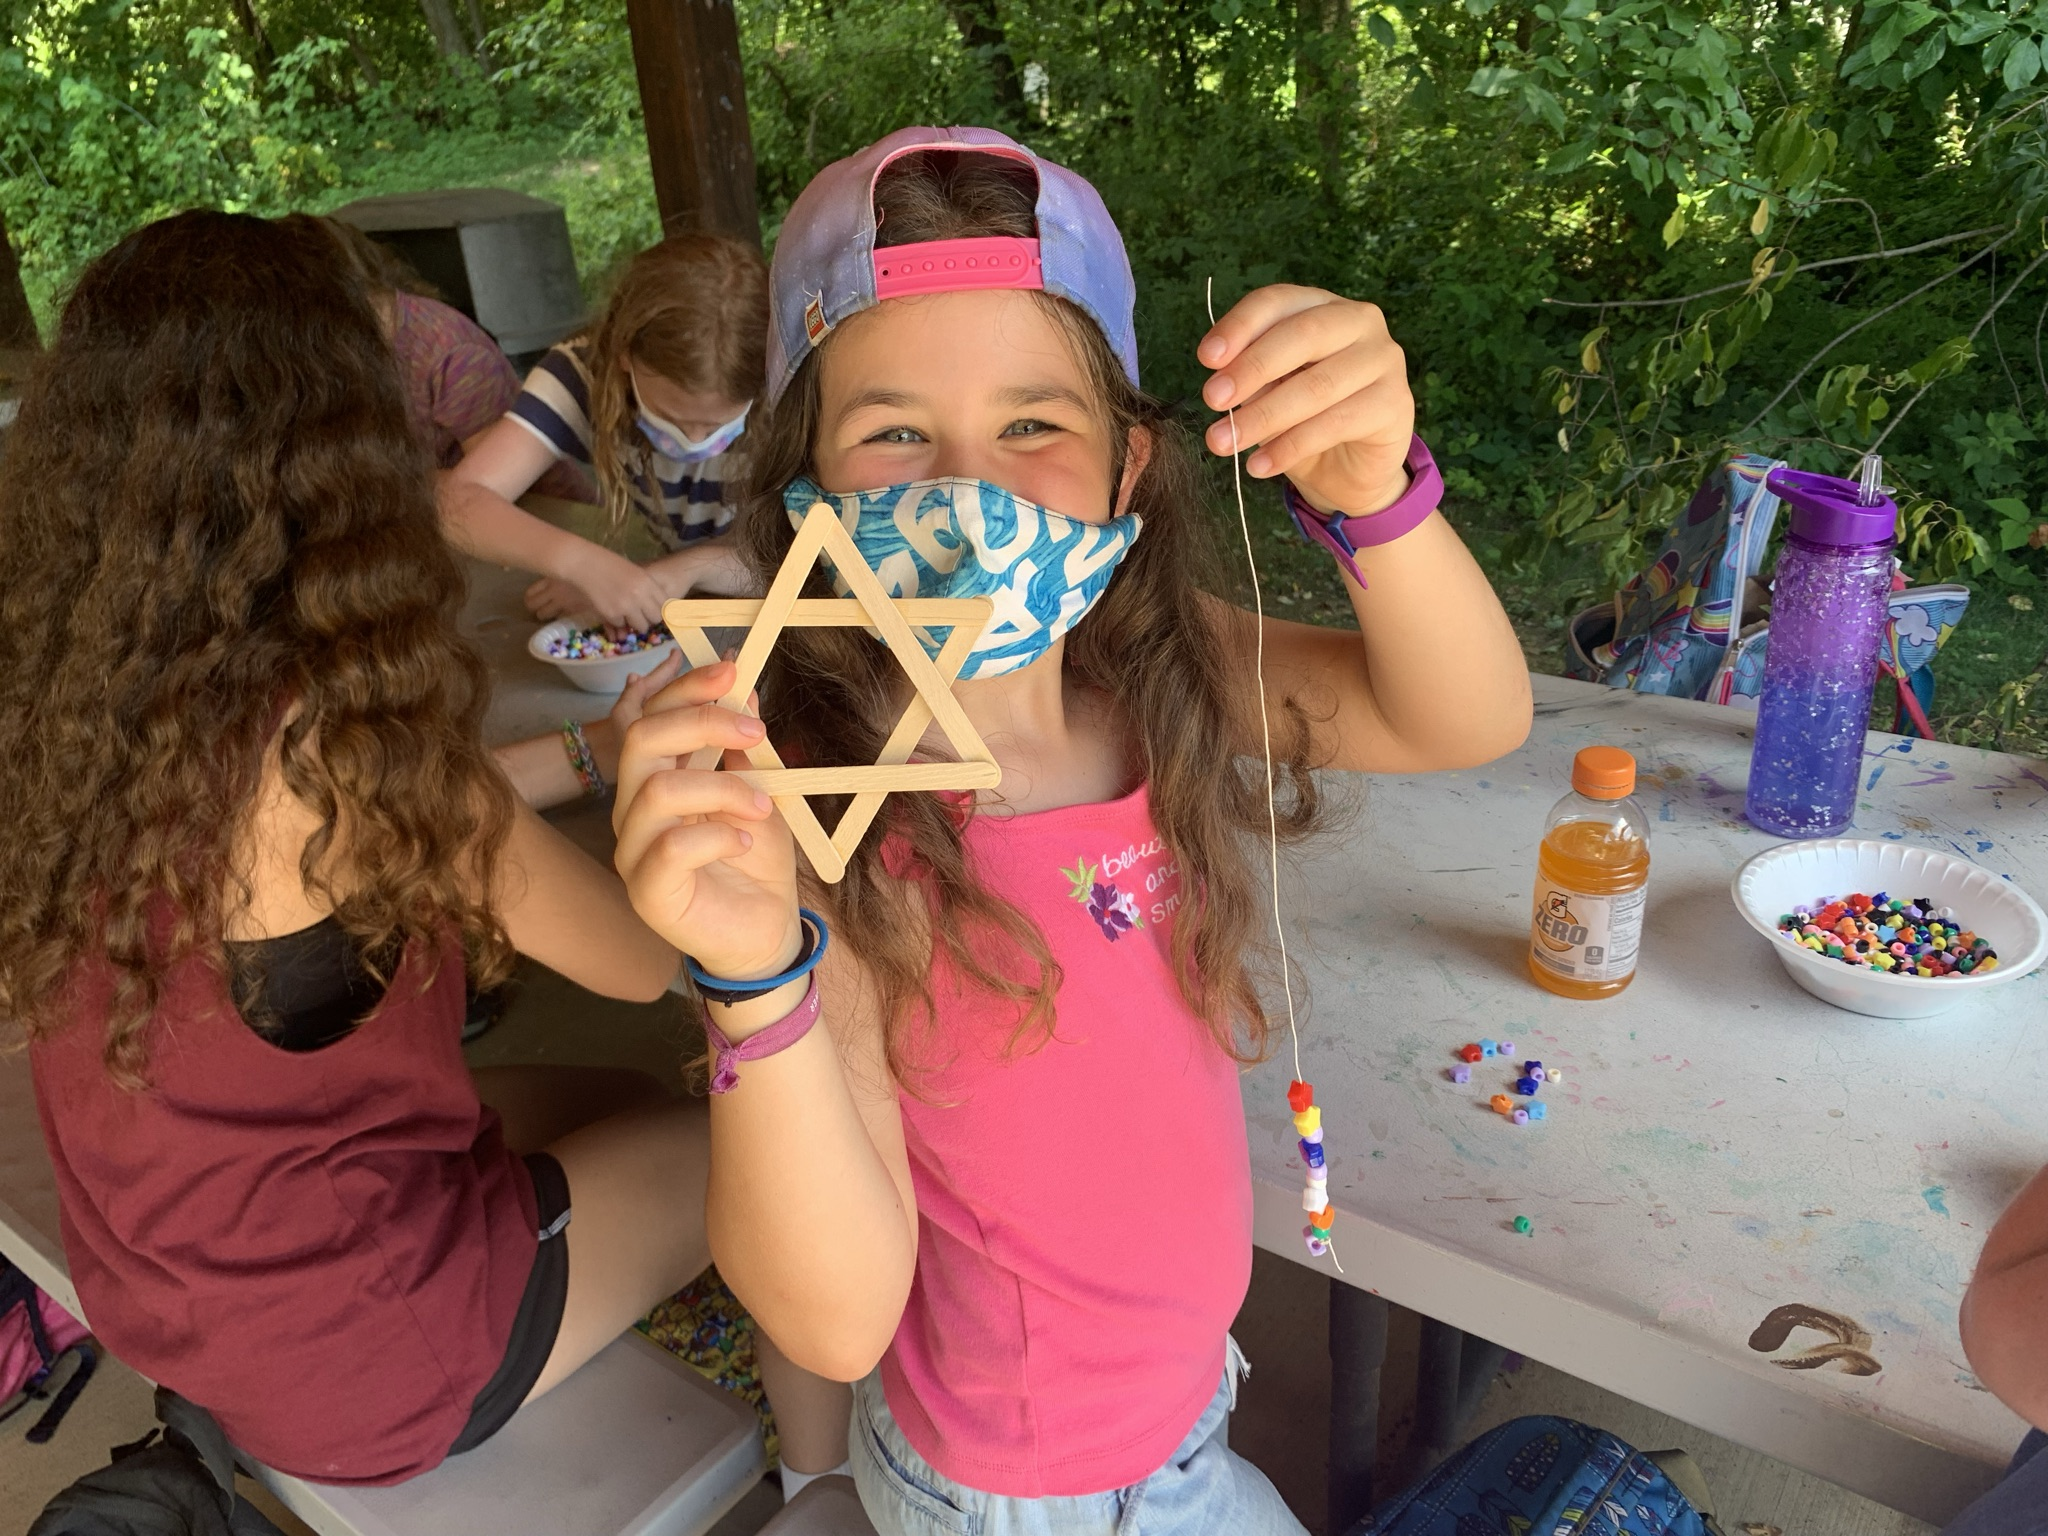 Camper enjoys the classic outdoor summer pairing of popsicle sticks and beading at J&R Day Camp. Photo courtesy of Emma Curtis via Jewish Community Center of Greater Pittsburgh